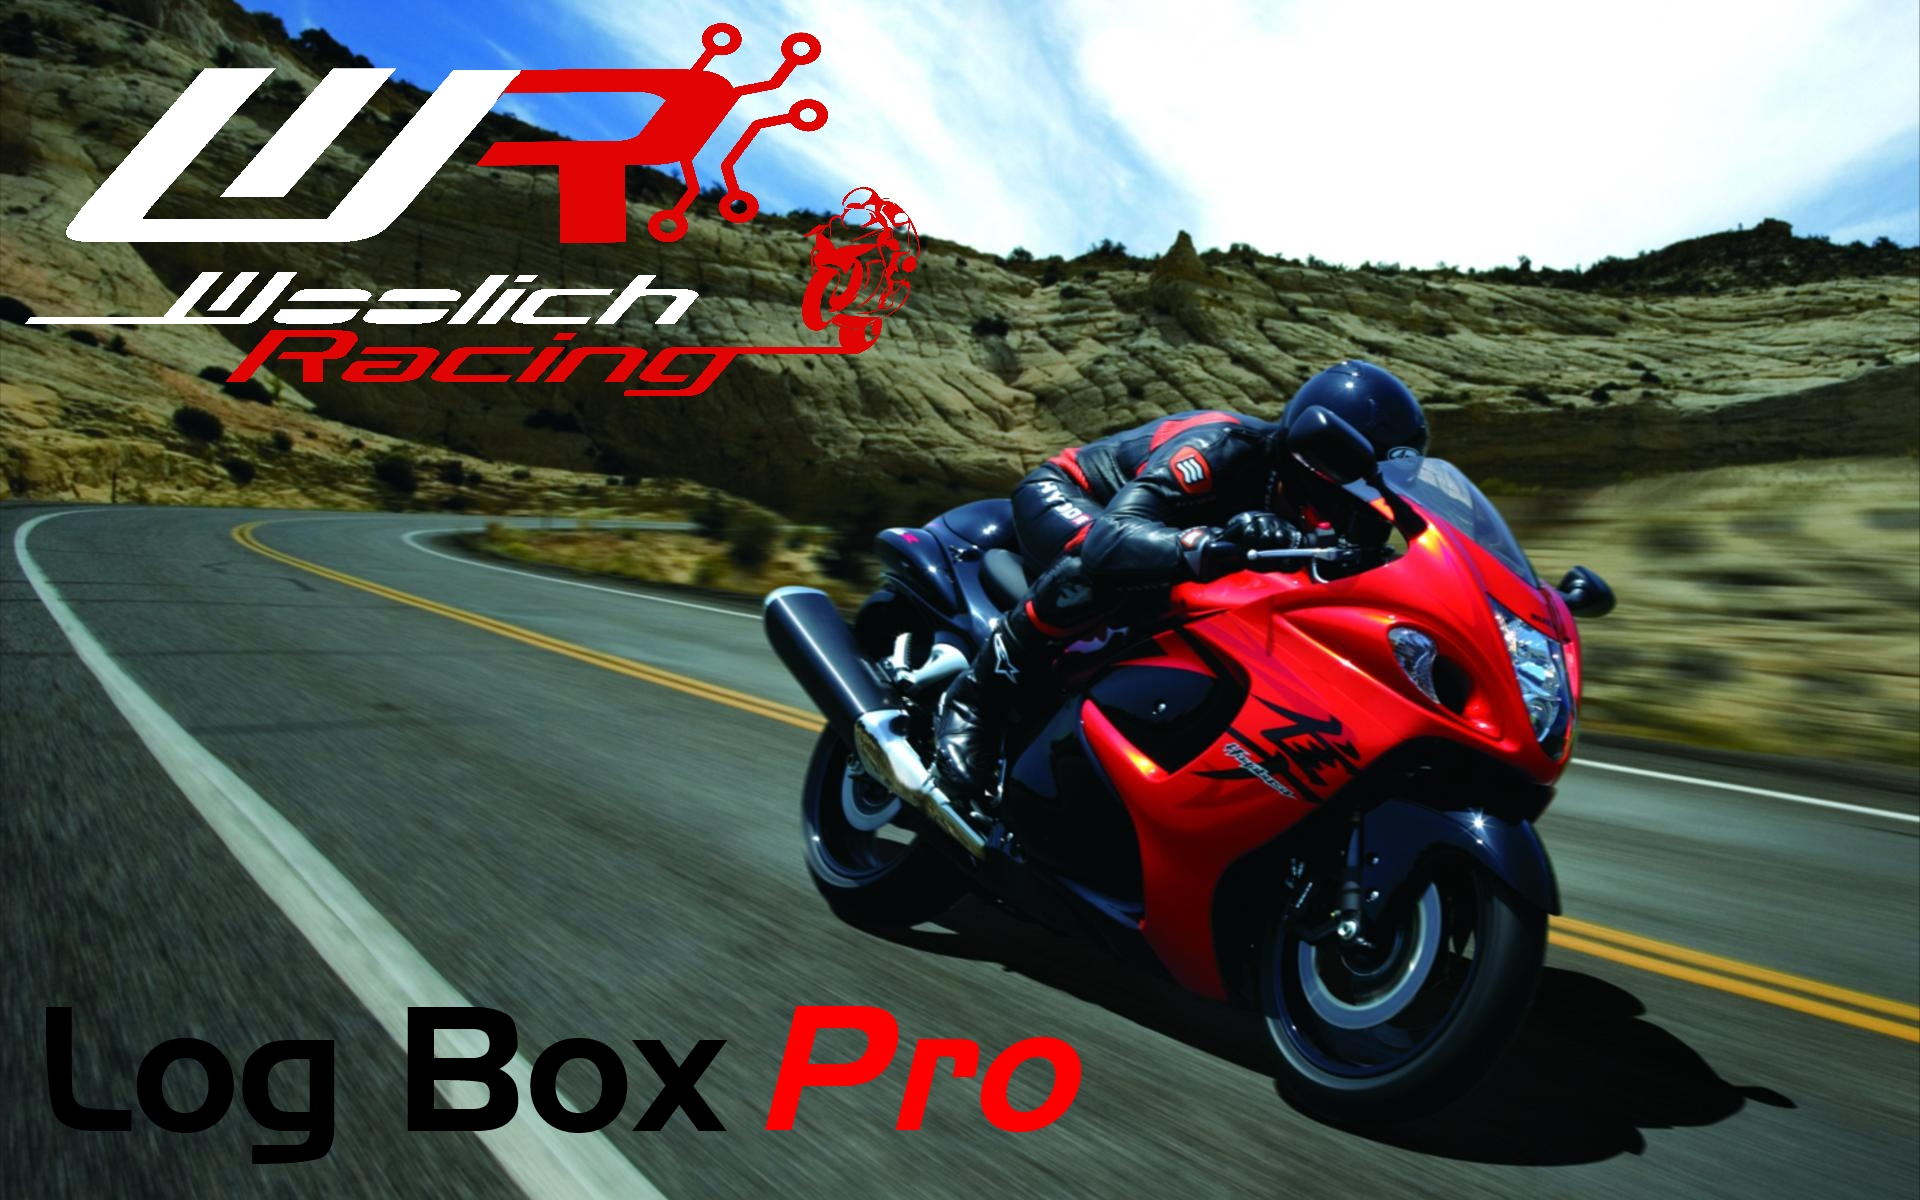 Log Box Pro (Denso) - ECU Flashing, Data Logging and AutoTune